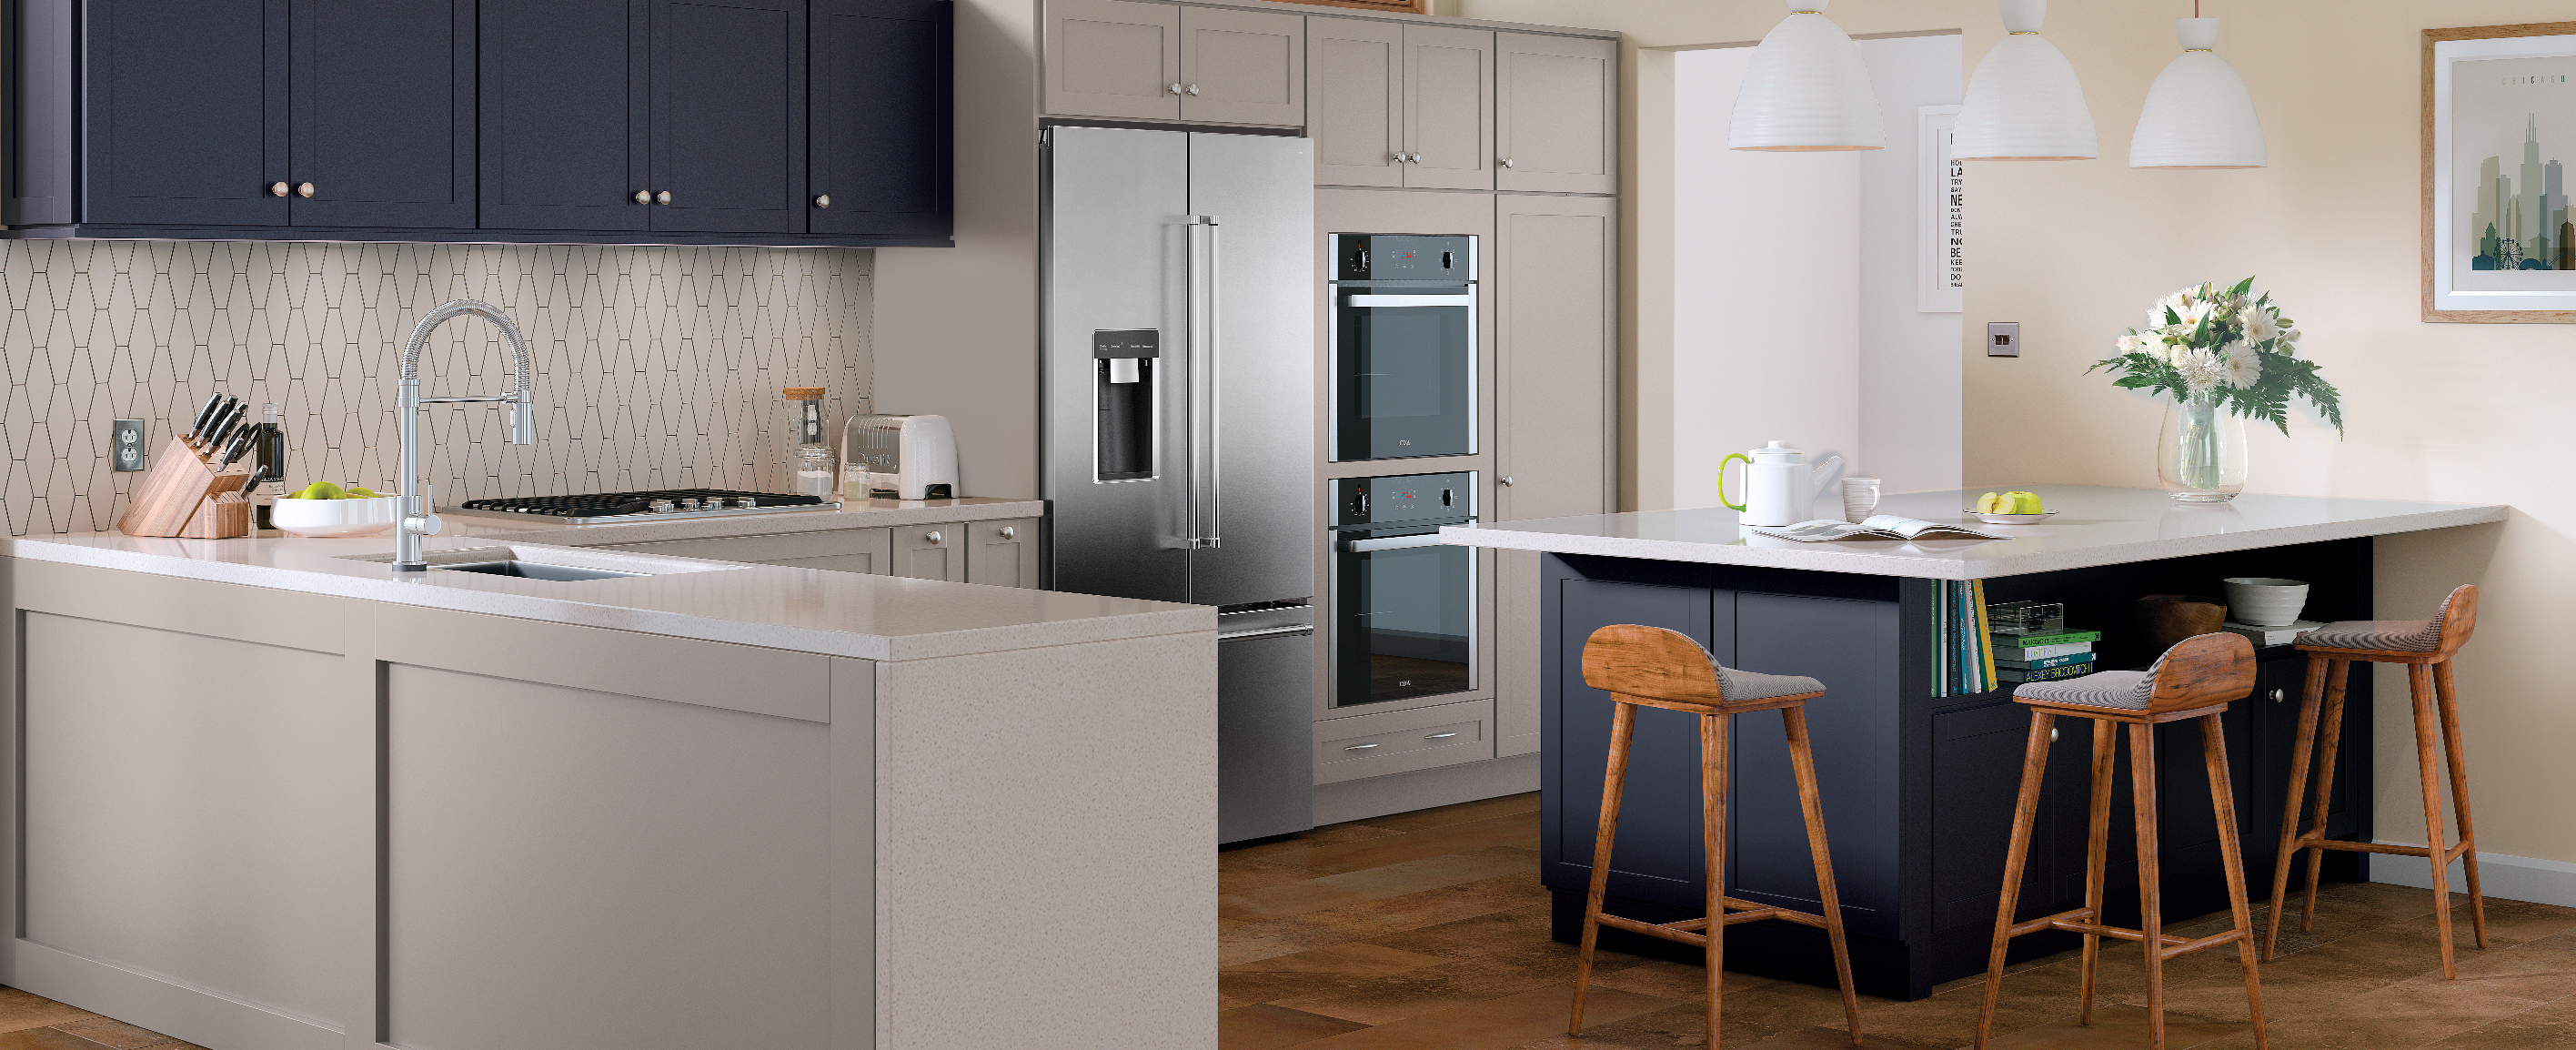 New Cabinet Colors At A Great Price Point Quality Has Now Introduced The Perfect Shade Of Navy Blue It S A Great Pop Of Color F With Images New Cabinet Cabinetry Kitchen